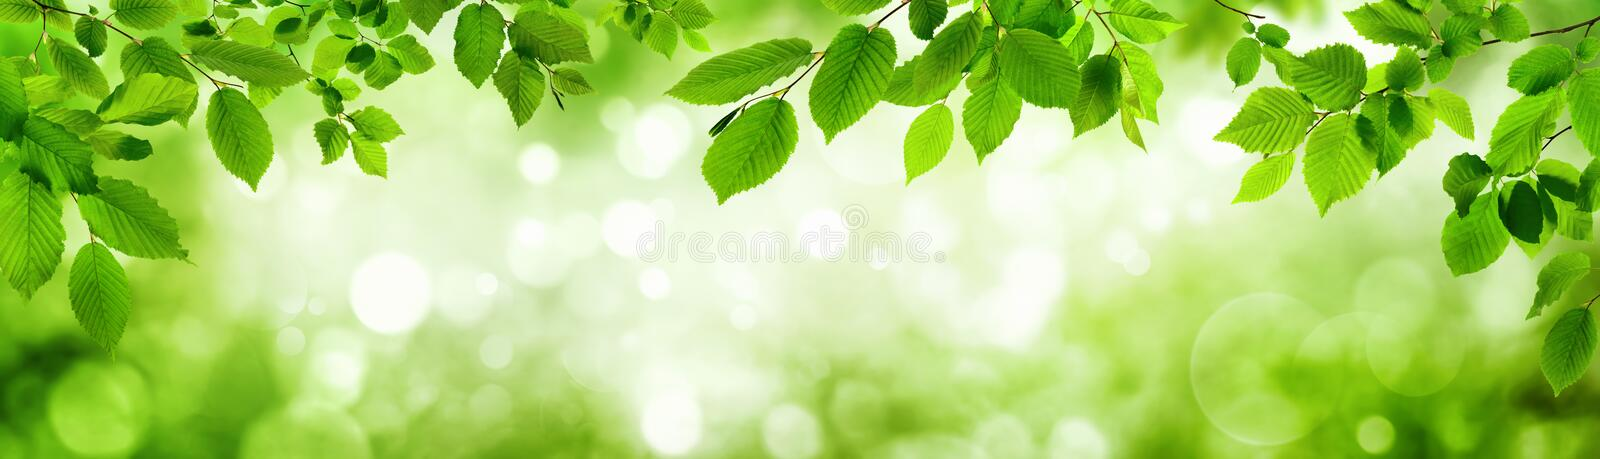 Green leaves and blurred highlights build a frame. Green leaves and blurred highlights in the background build a natural frame in panorama format stock image